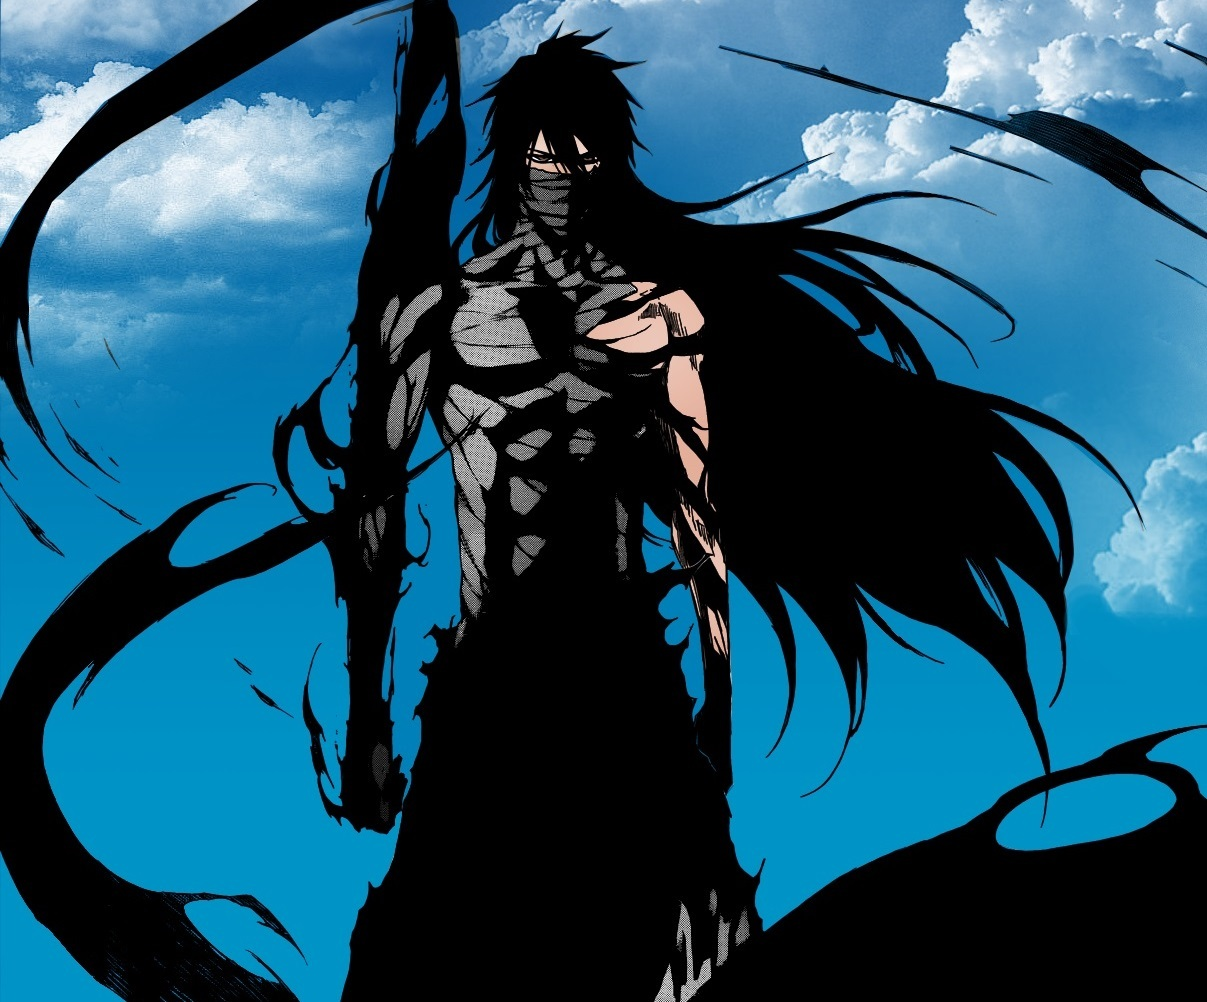 Out of these two, Best Ichigo's form? - Bleach Anime - Fanpop